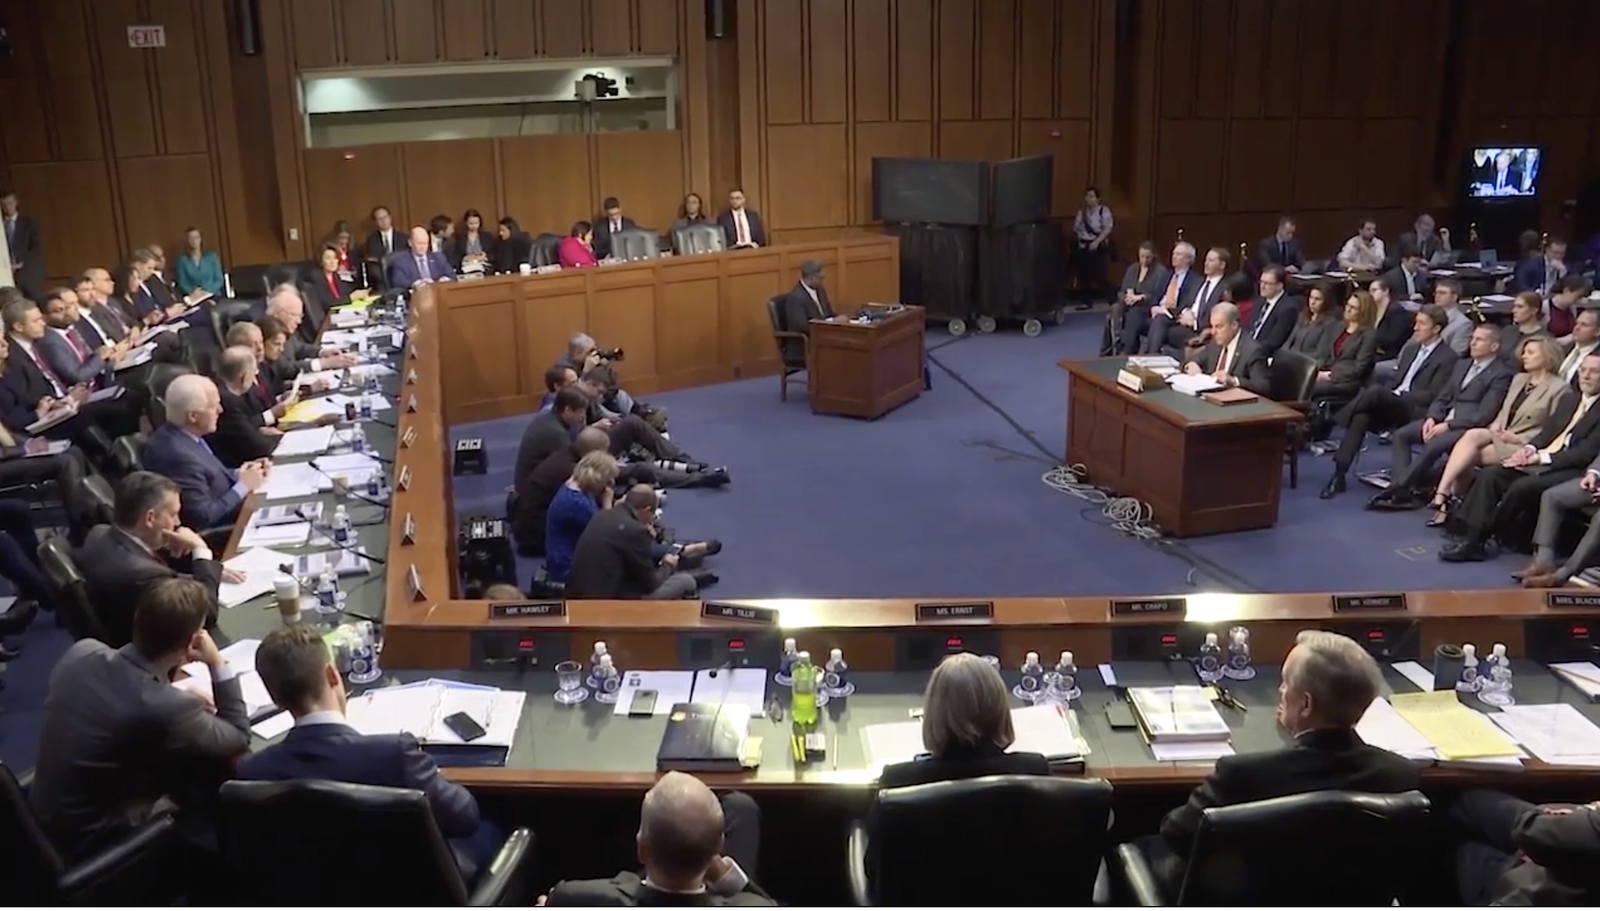 Caught in political tug of war, watchdog testifies on Russia investigation (Photo: Sinclair Broadcast Group)